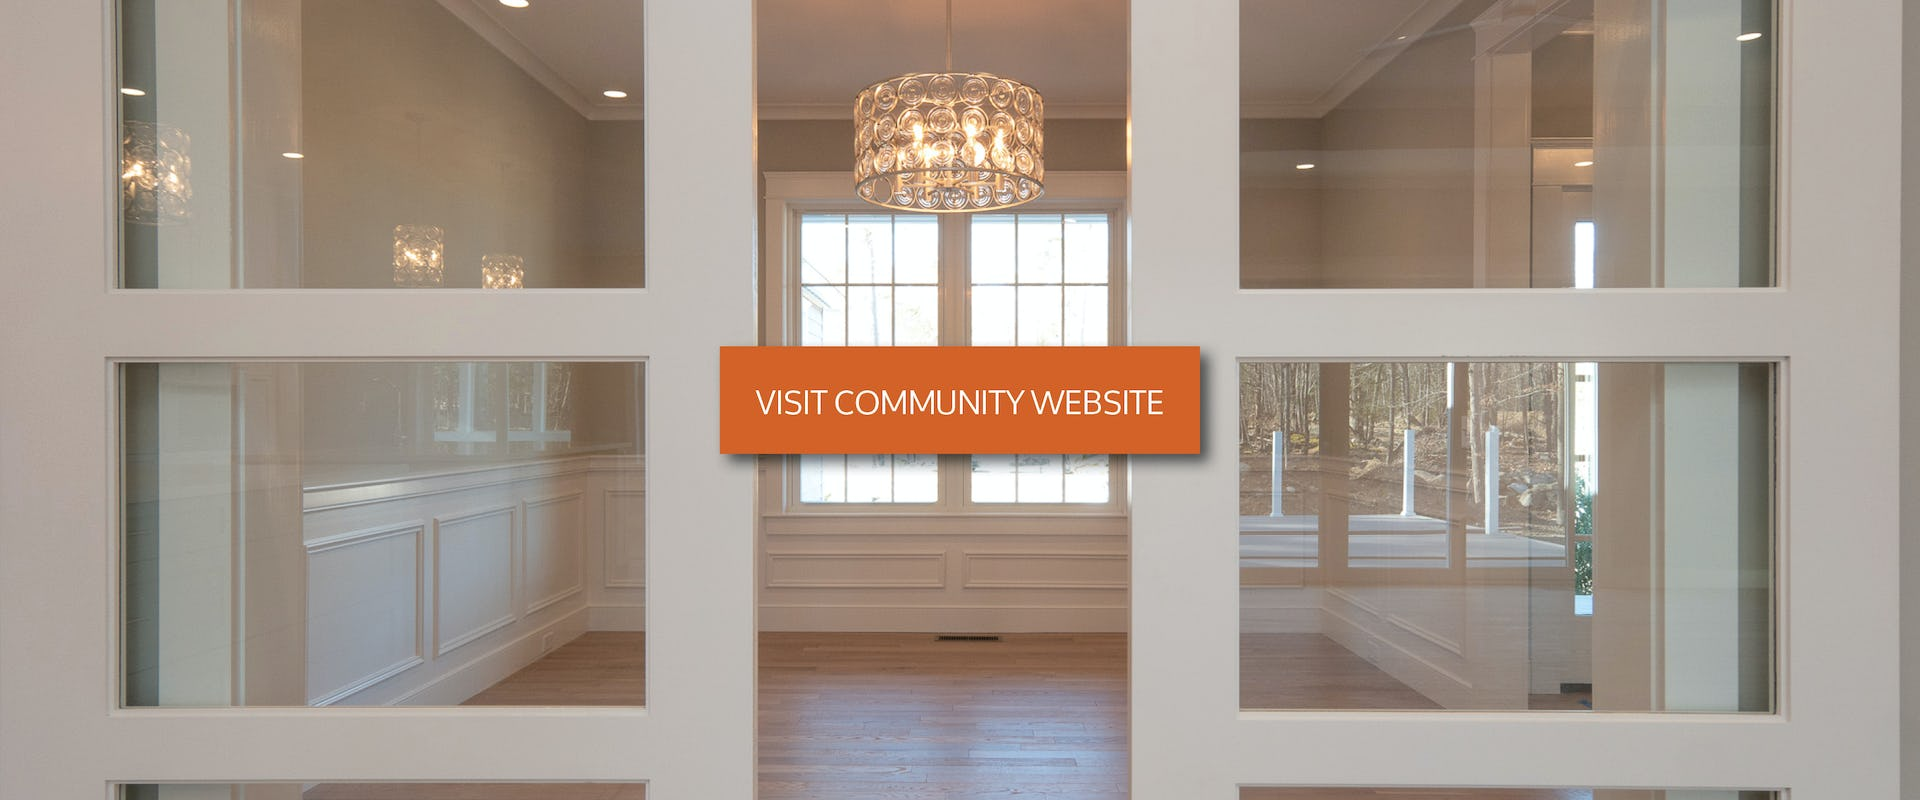 french doors with visit community website button